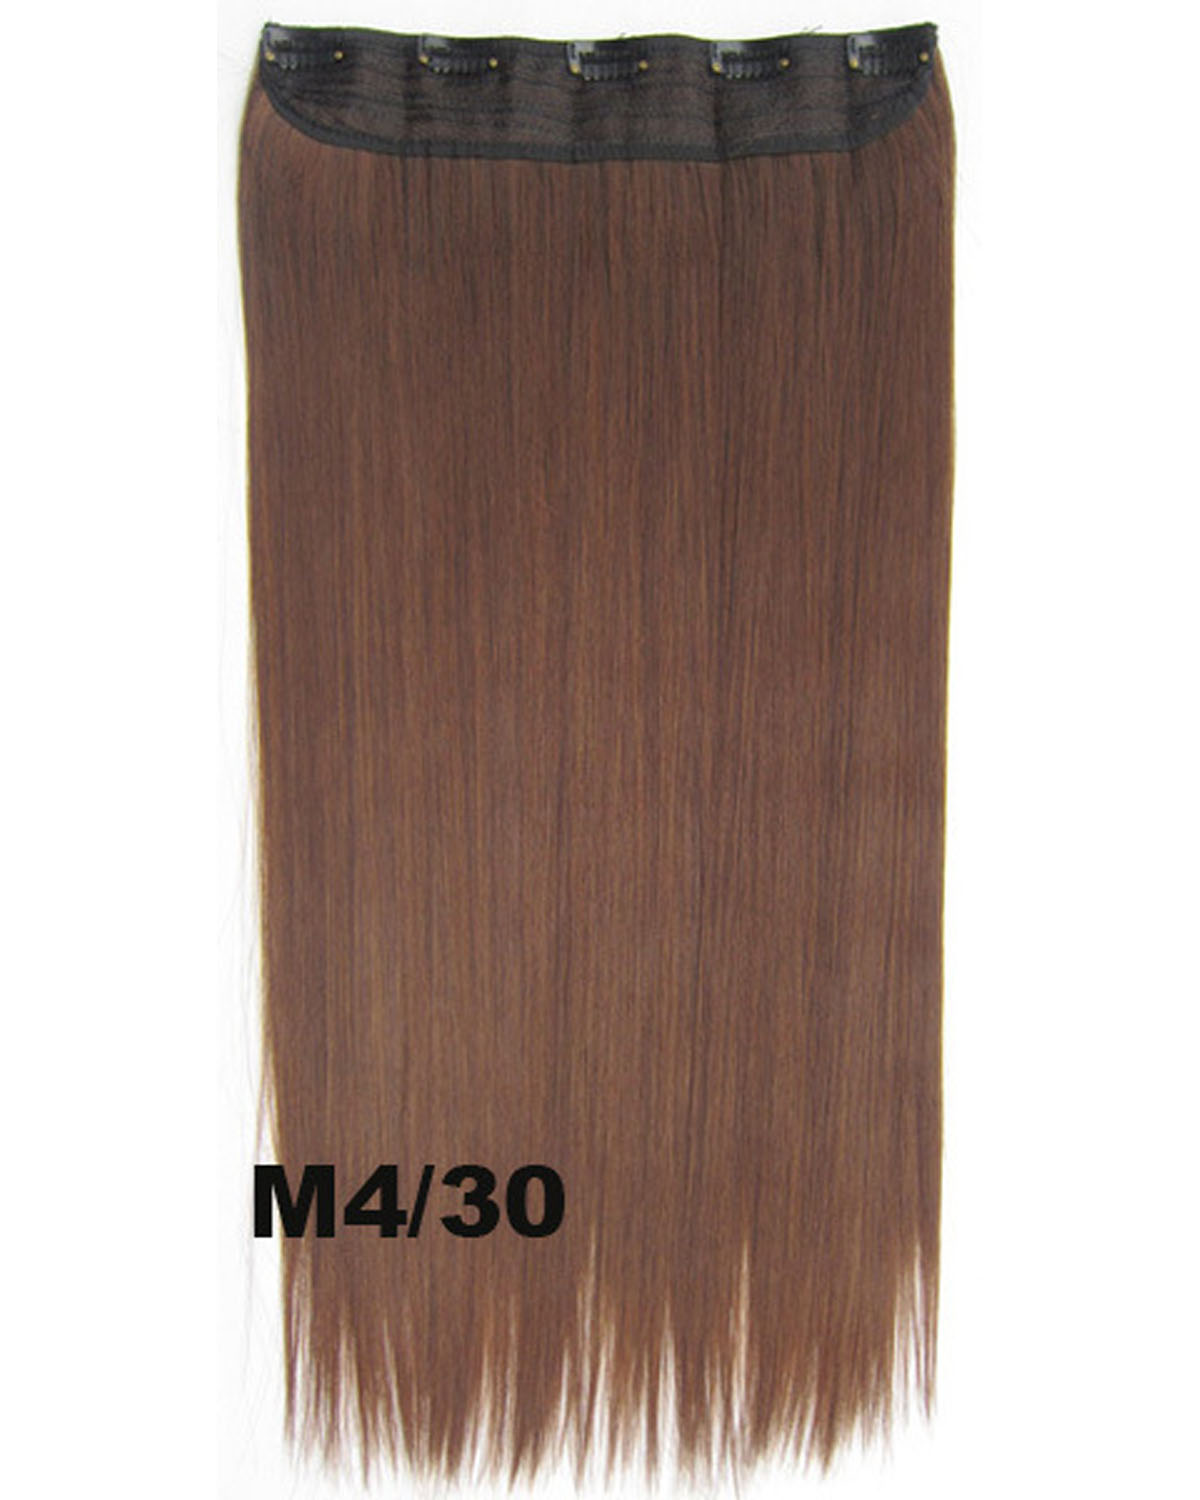 24 inch Unartificial Straight Long One Piece 5 Clips Clip in Synthetic Hair Extension M4/30